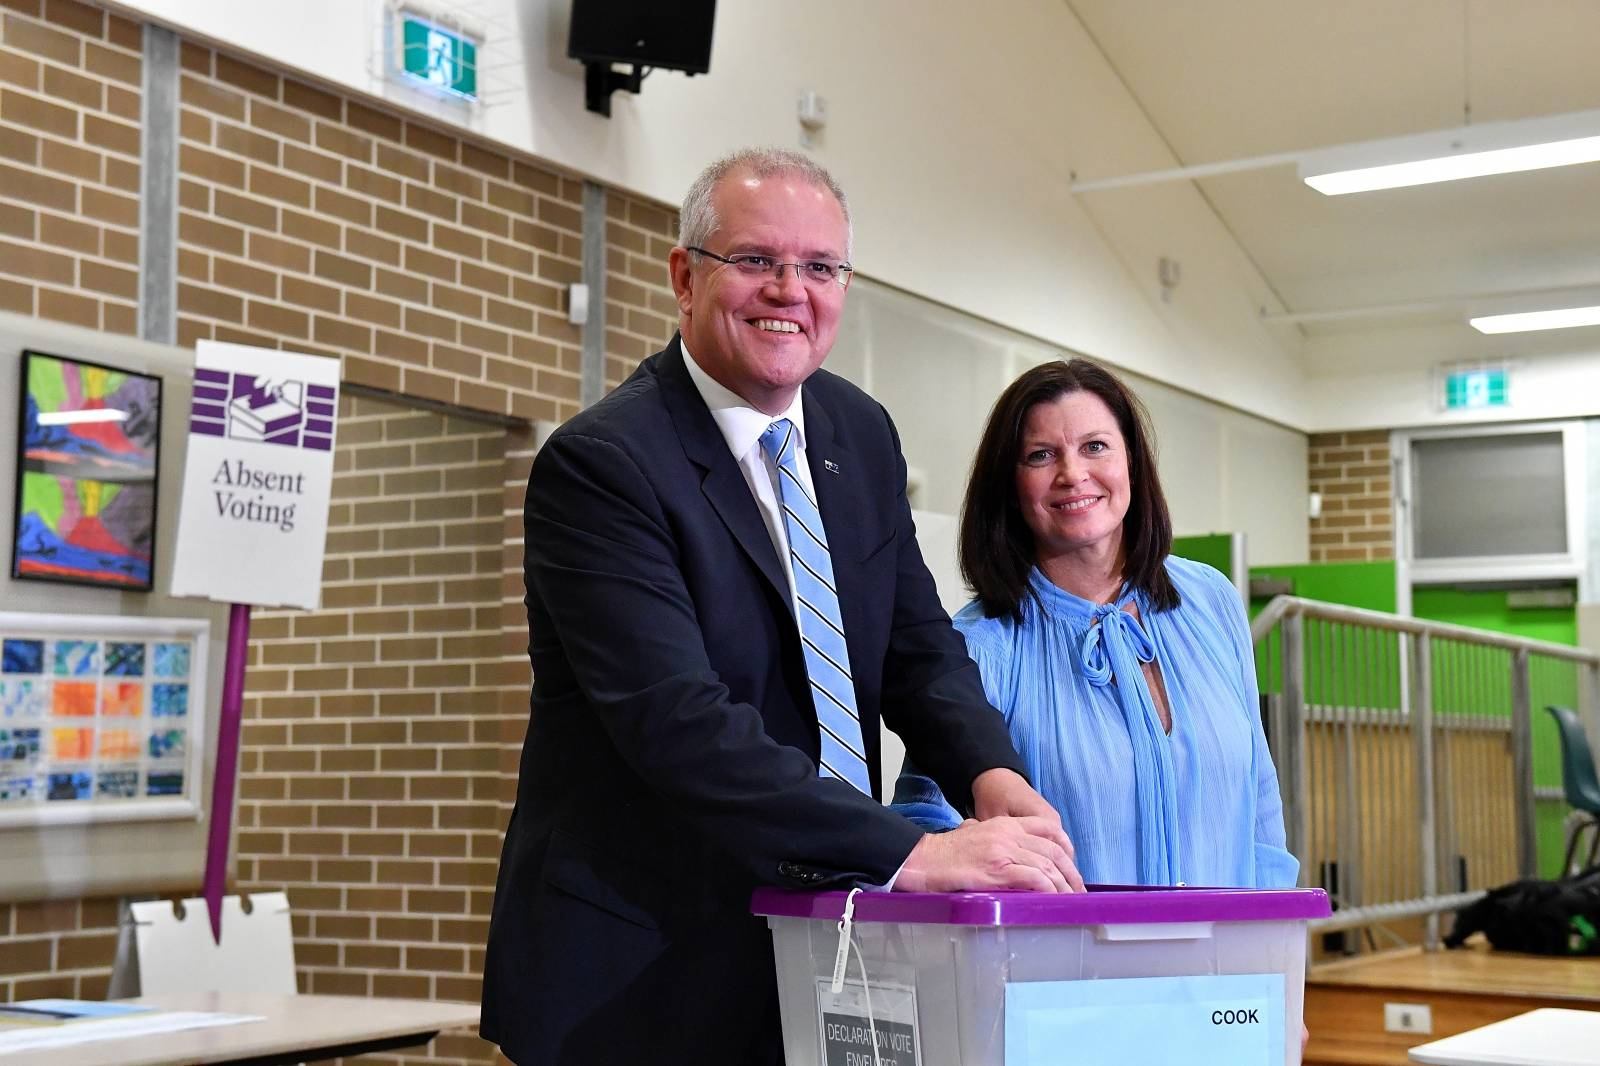 Australian Prime Minister Scott Morrison casts his vote alongside wife Jenny, on Election day, at Lilli Pilli Public School, in Sydney